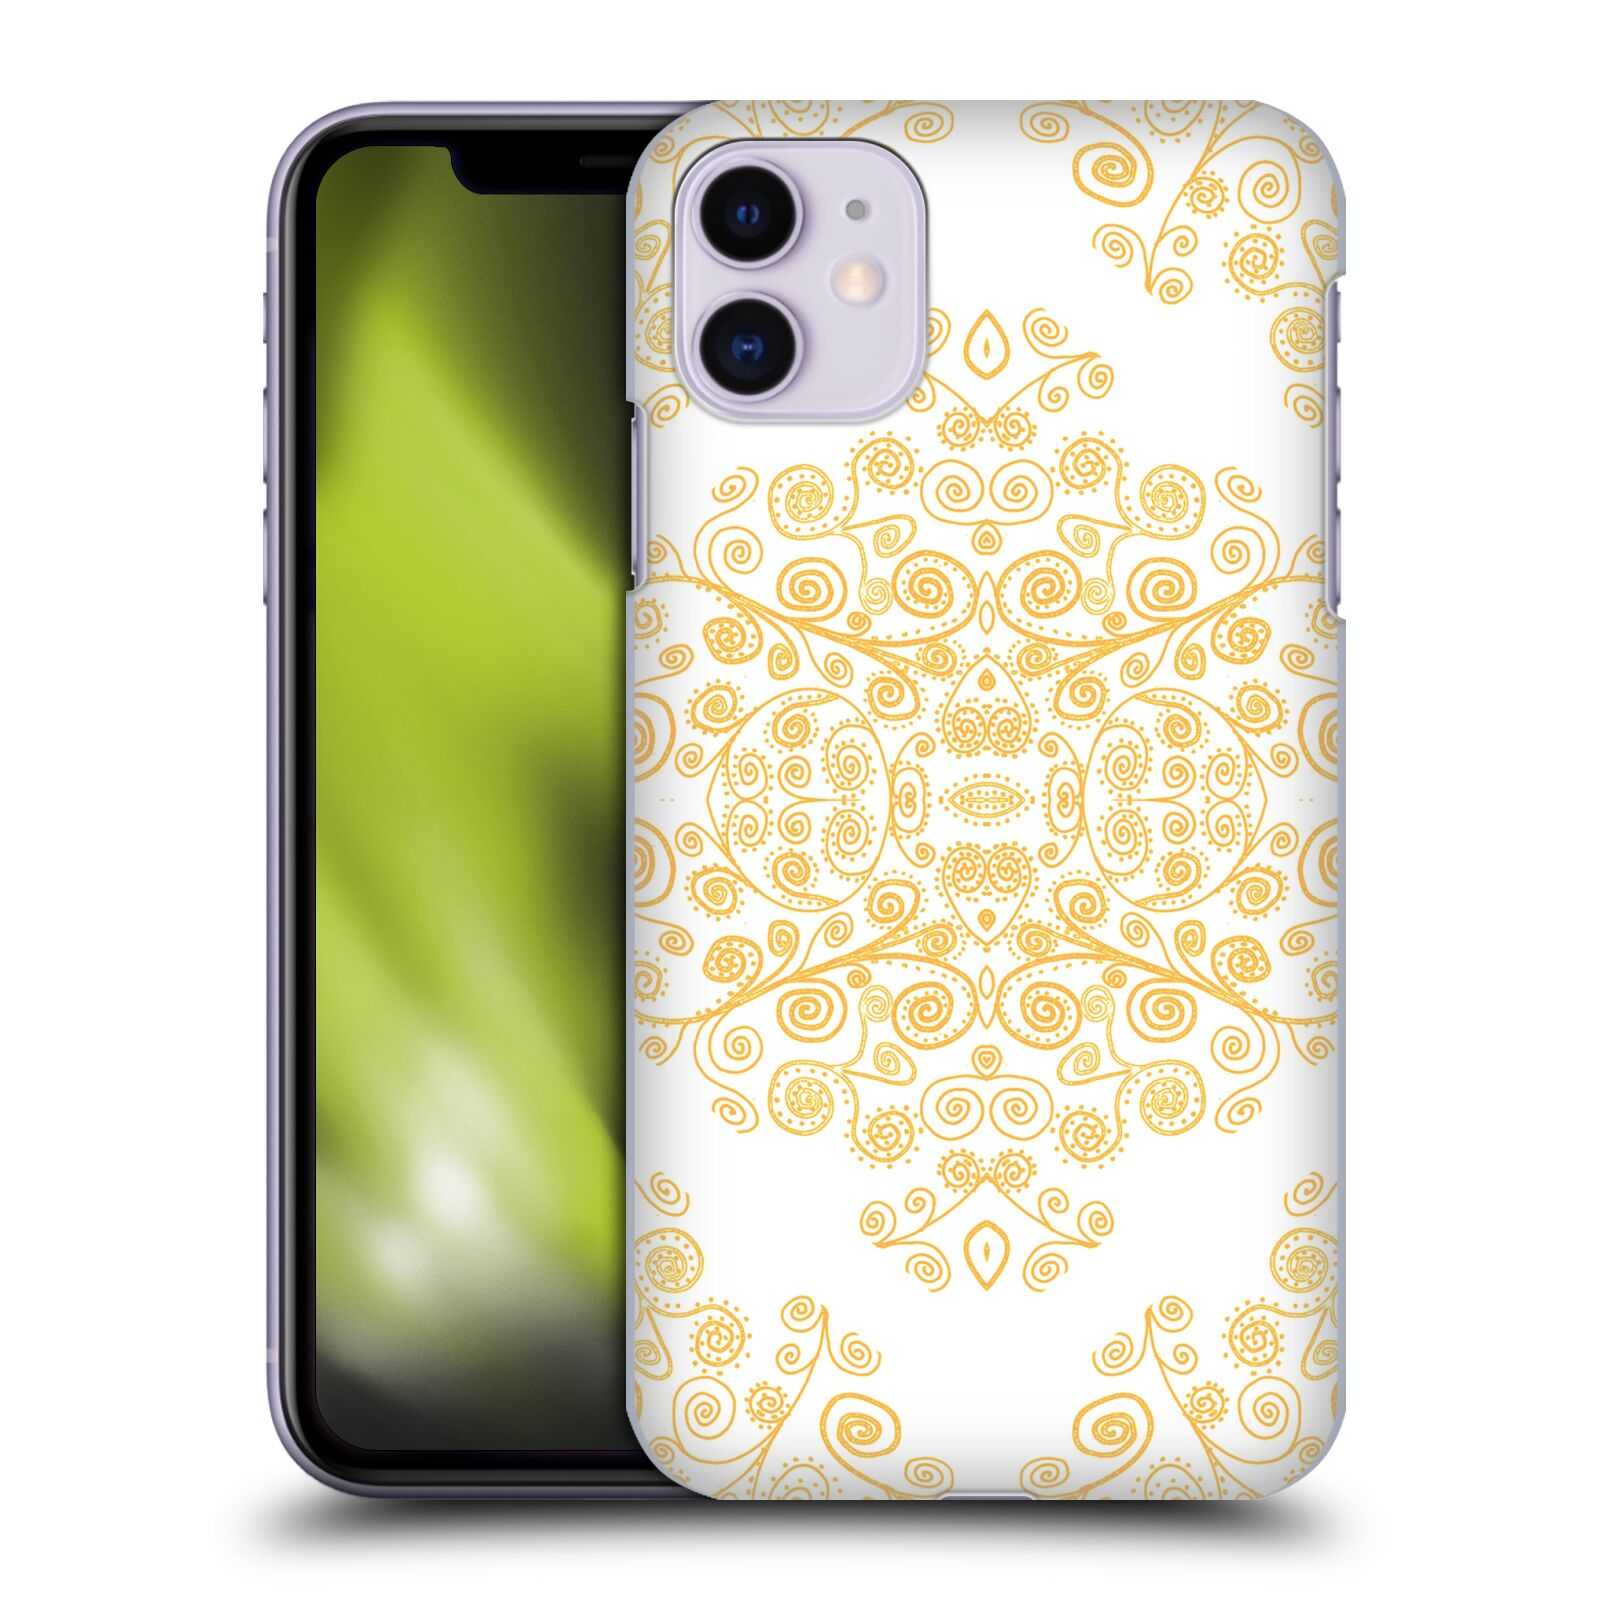 Official Monika Strigel Ambrosia Orange Case for Apple iPhone 11